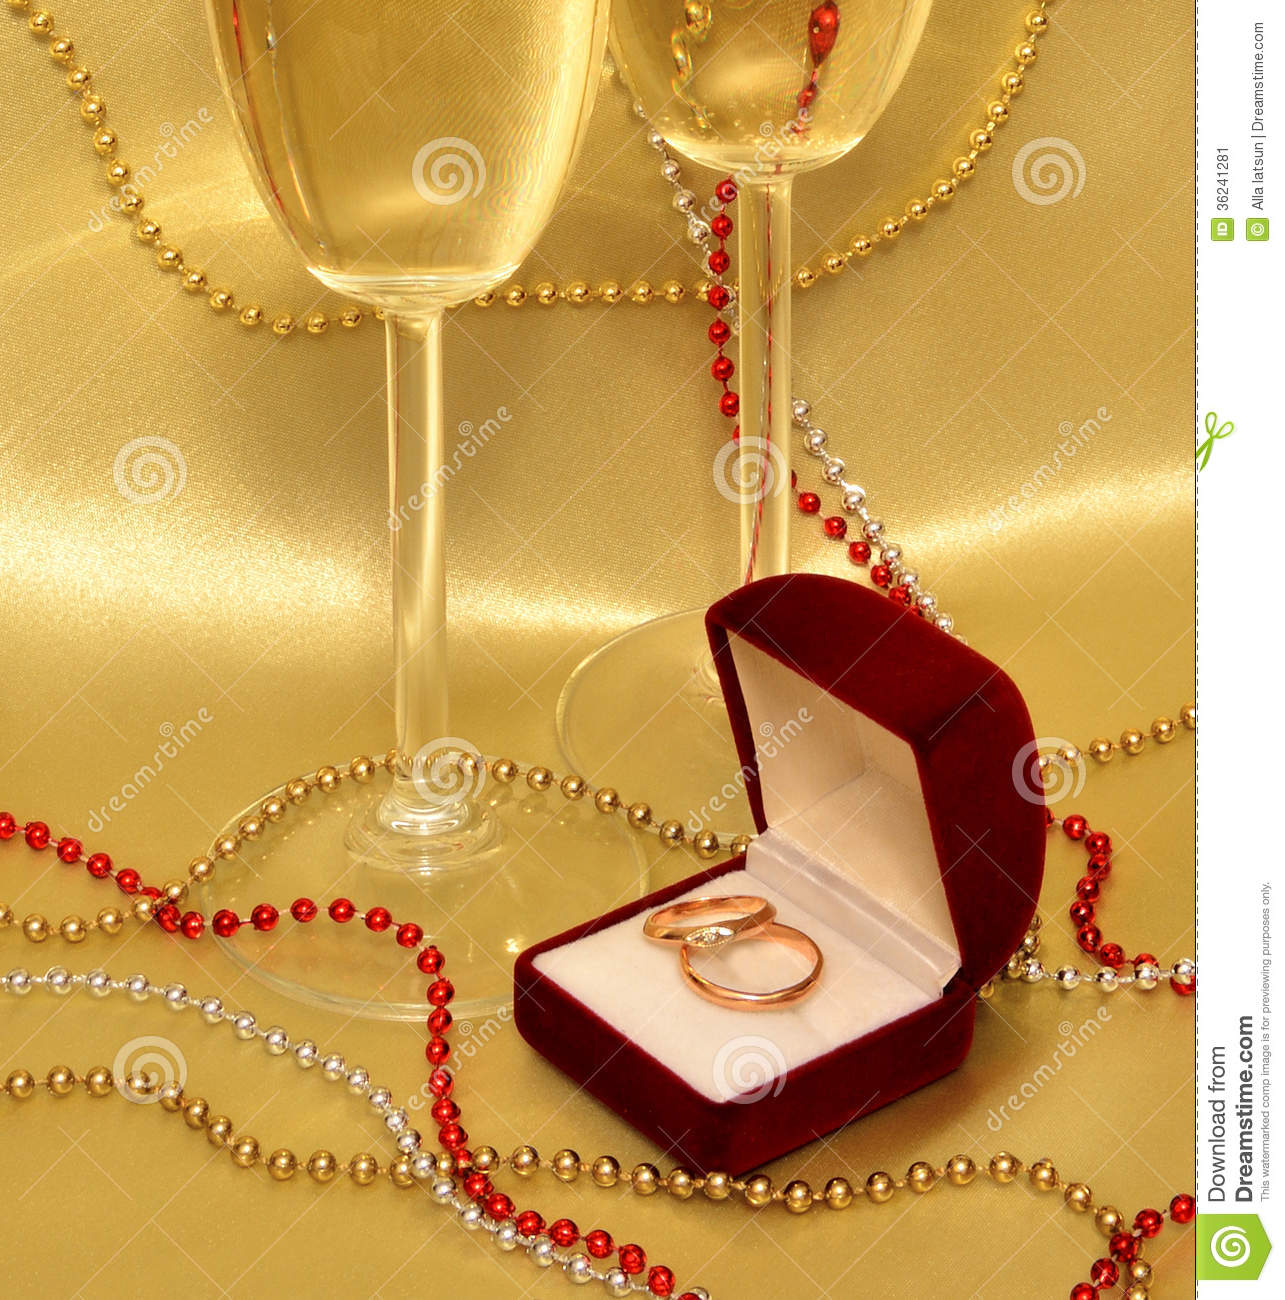 Wedding Rings And Glasses With Sparkling Wine On A Golden